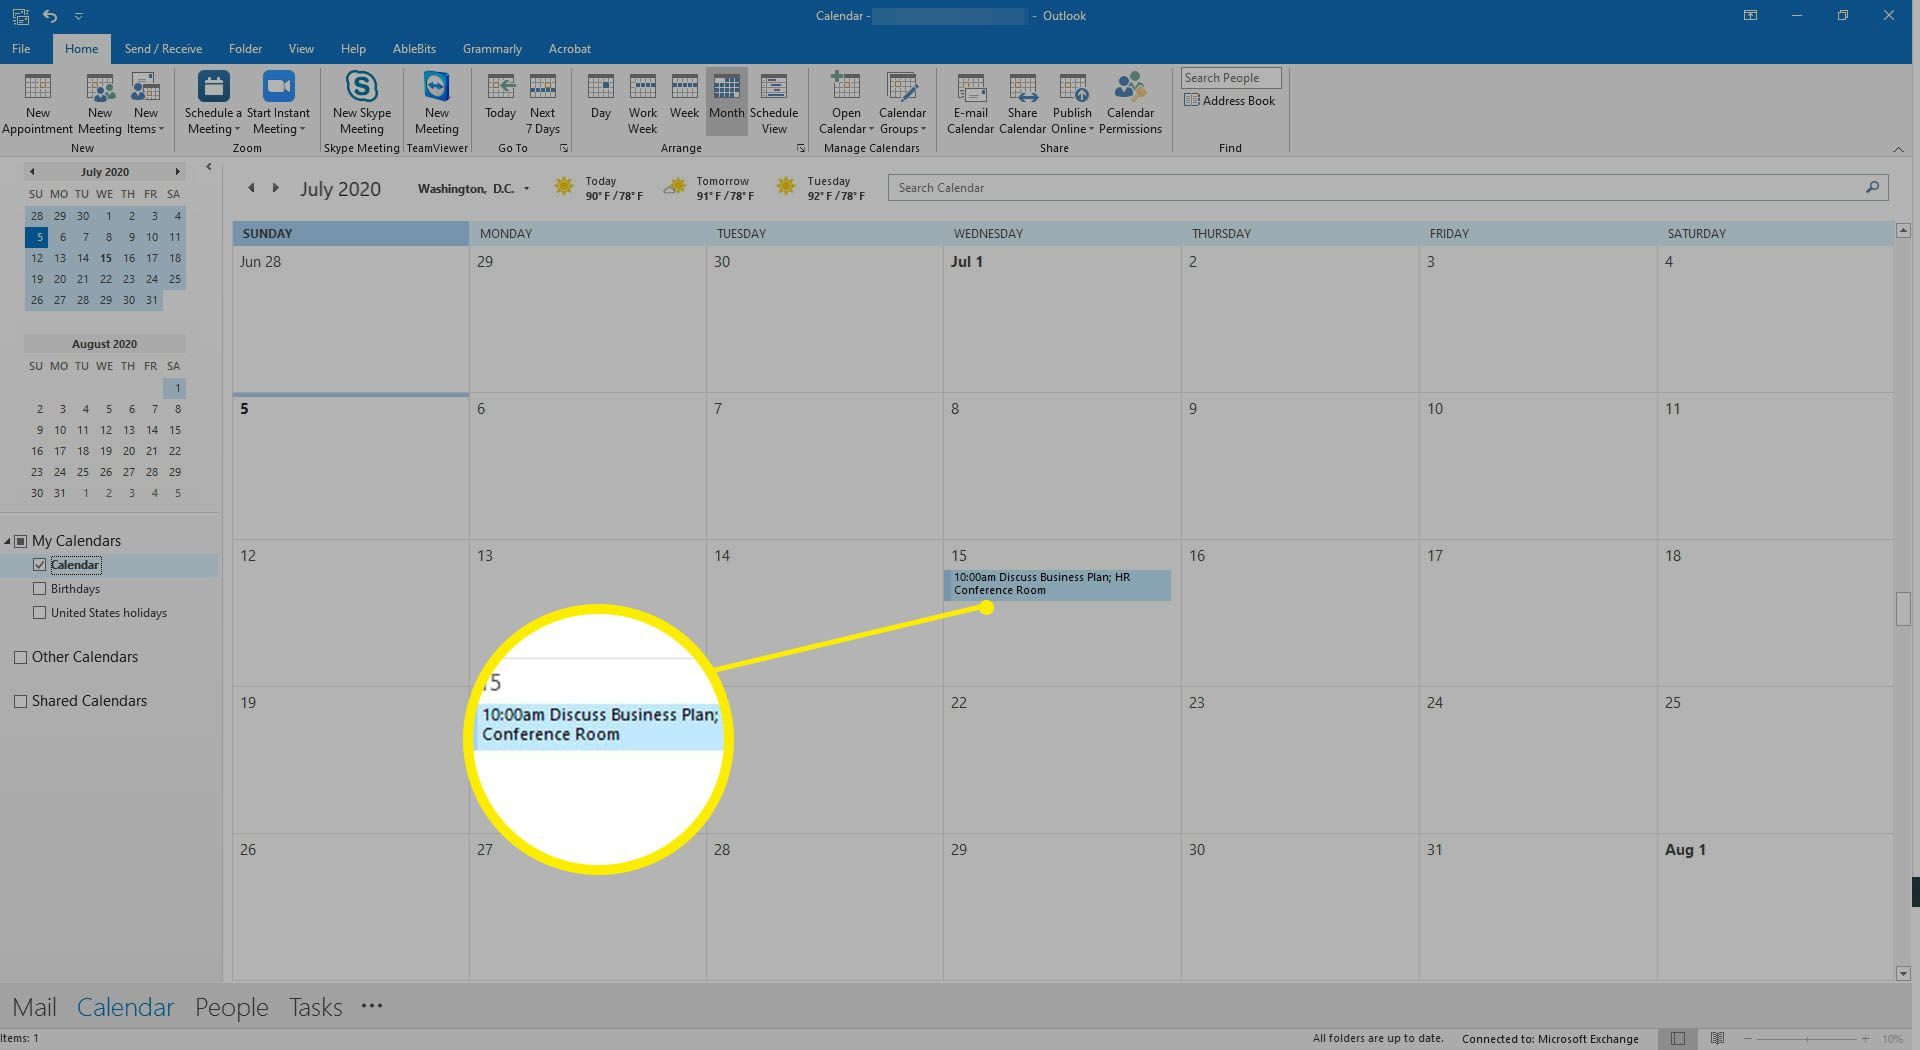 The Outlook calendar showing scheduled meetings.